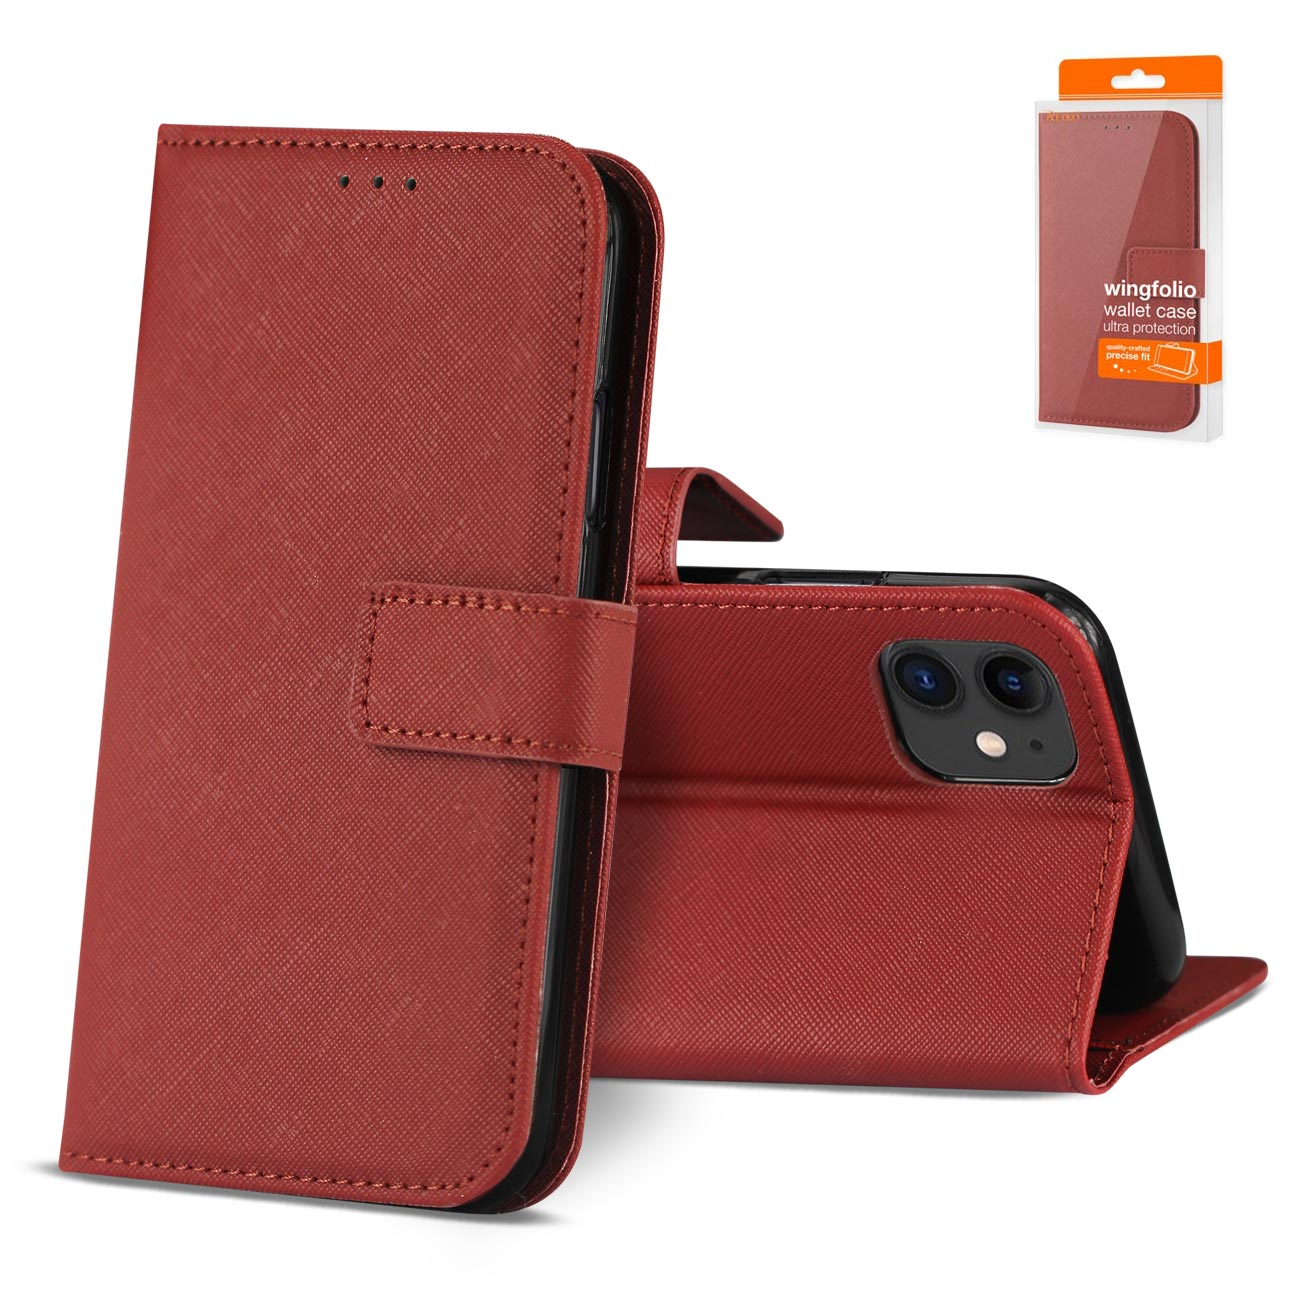 APPLE IPHONE 11 3-In-1 Wallet Case In RED